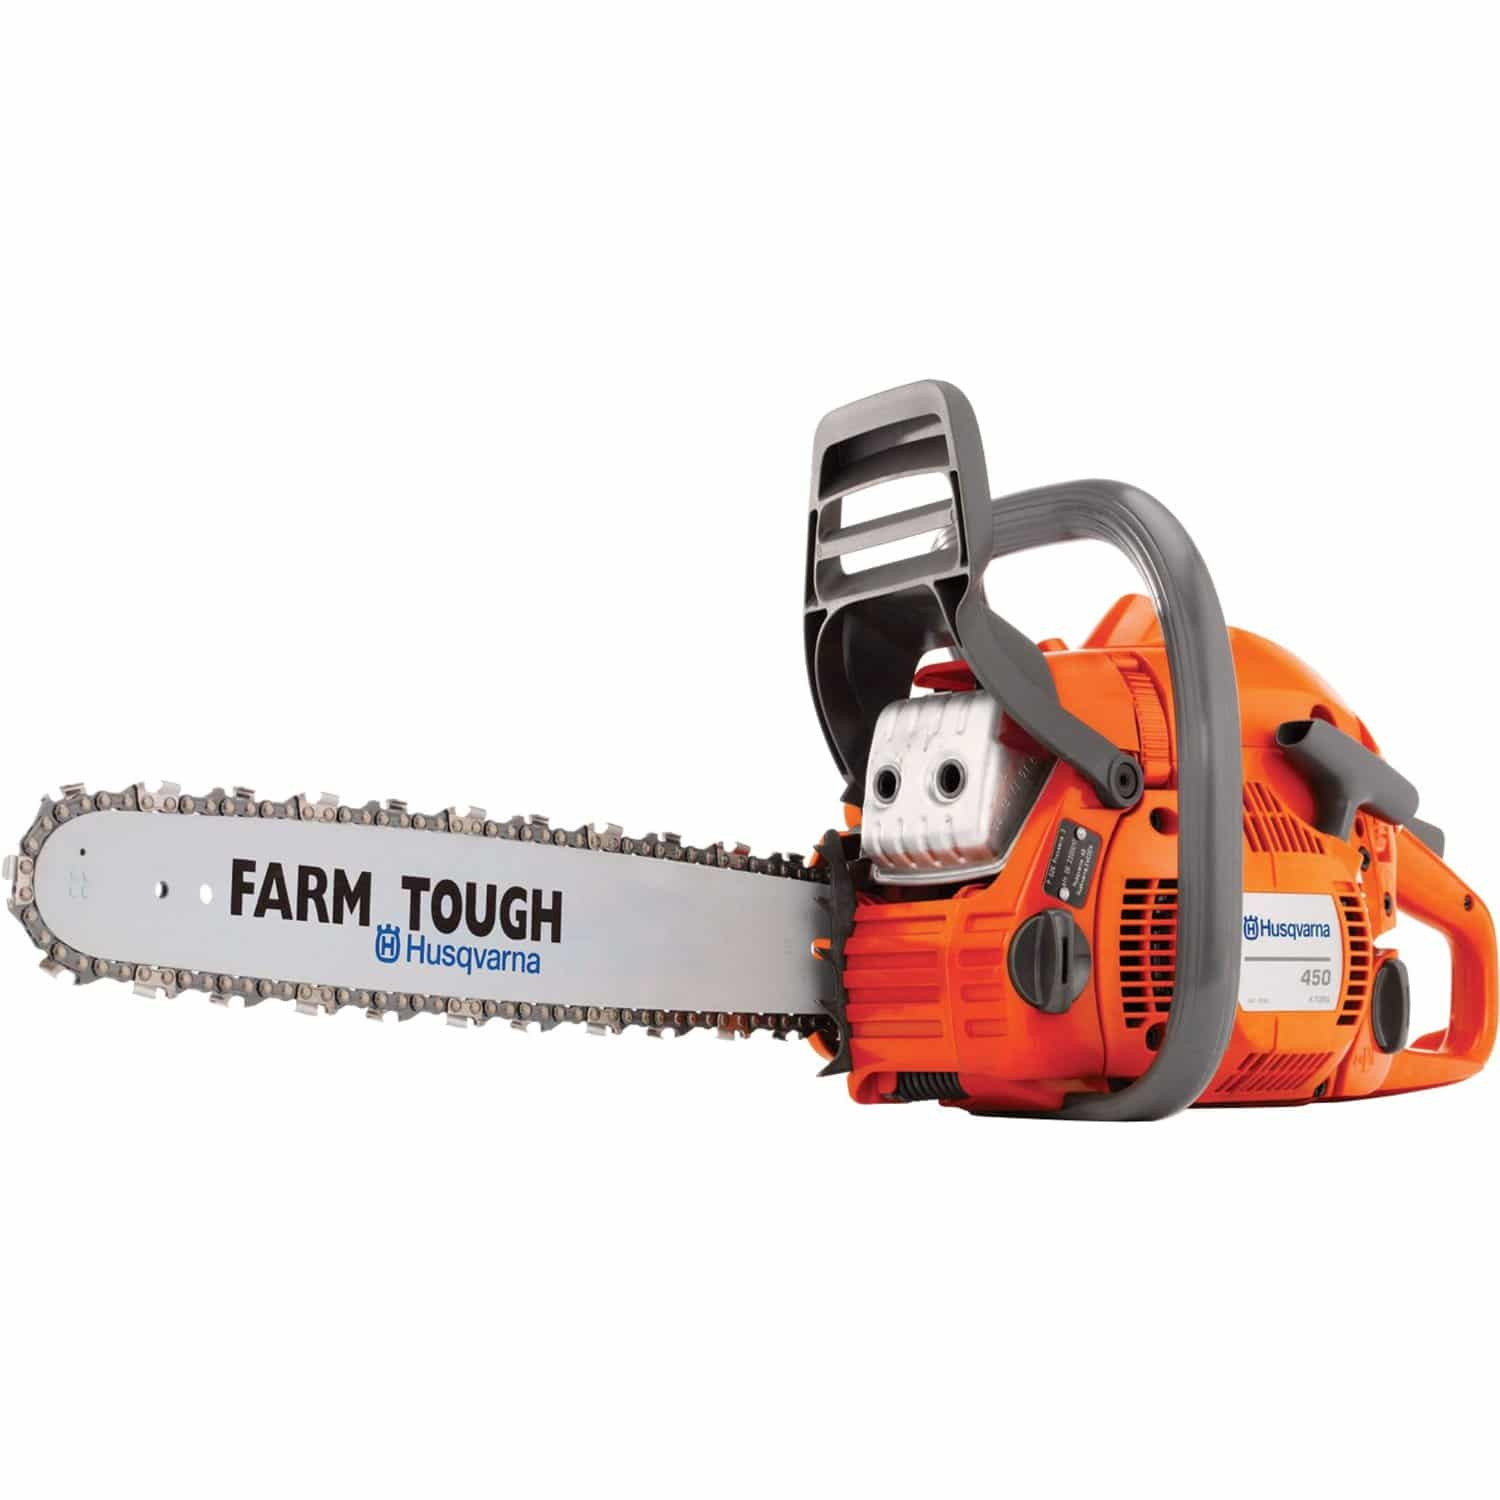 Fully Assembled Gas Chainsaw